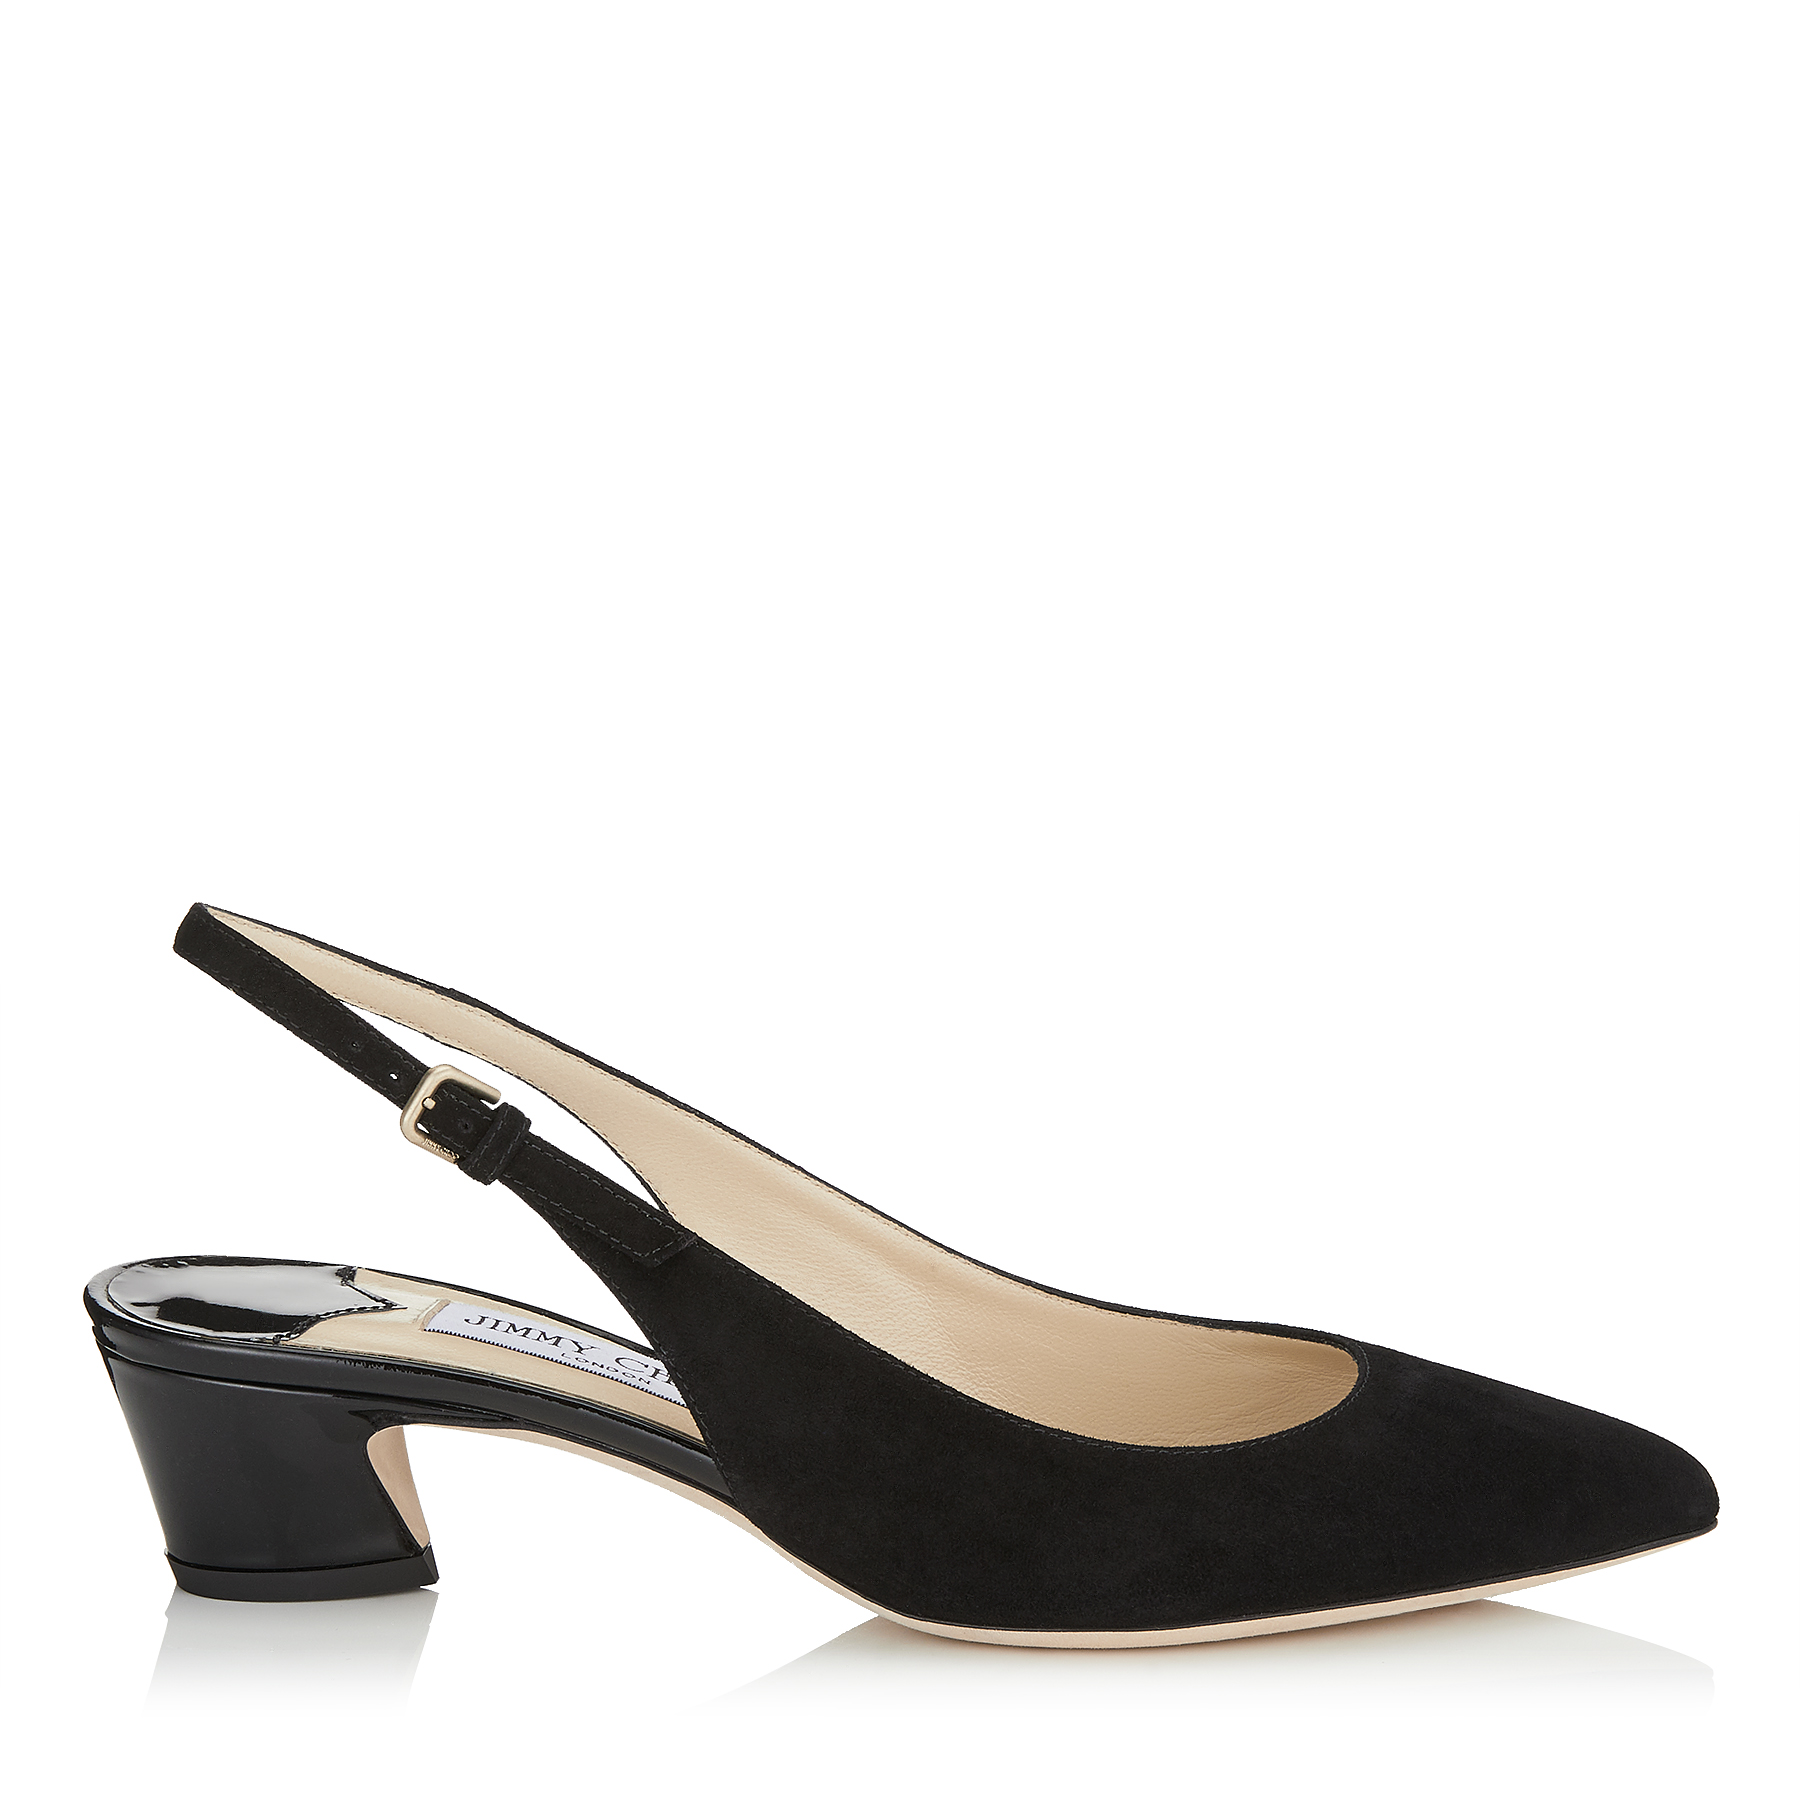 GEMMA 40 Black Suede and Patent Slingback Pumps by Jimmy Choo